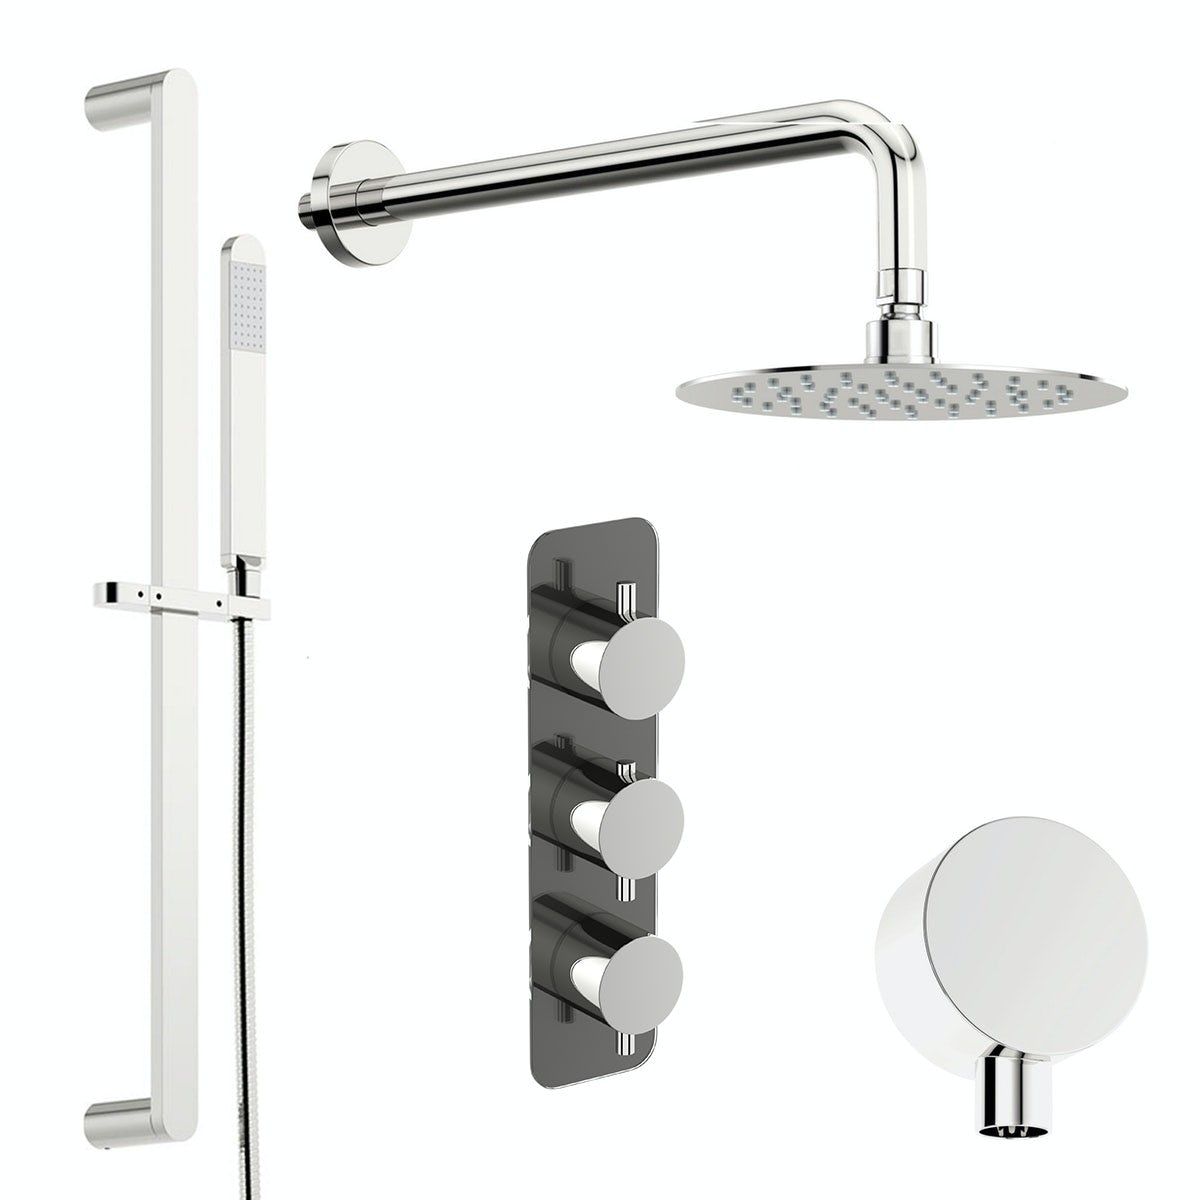 Mode Heath thermostatic shower valve with slider rail and wall shower set